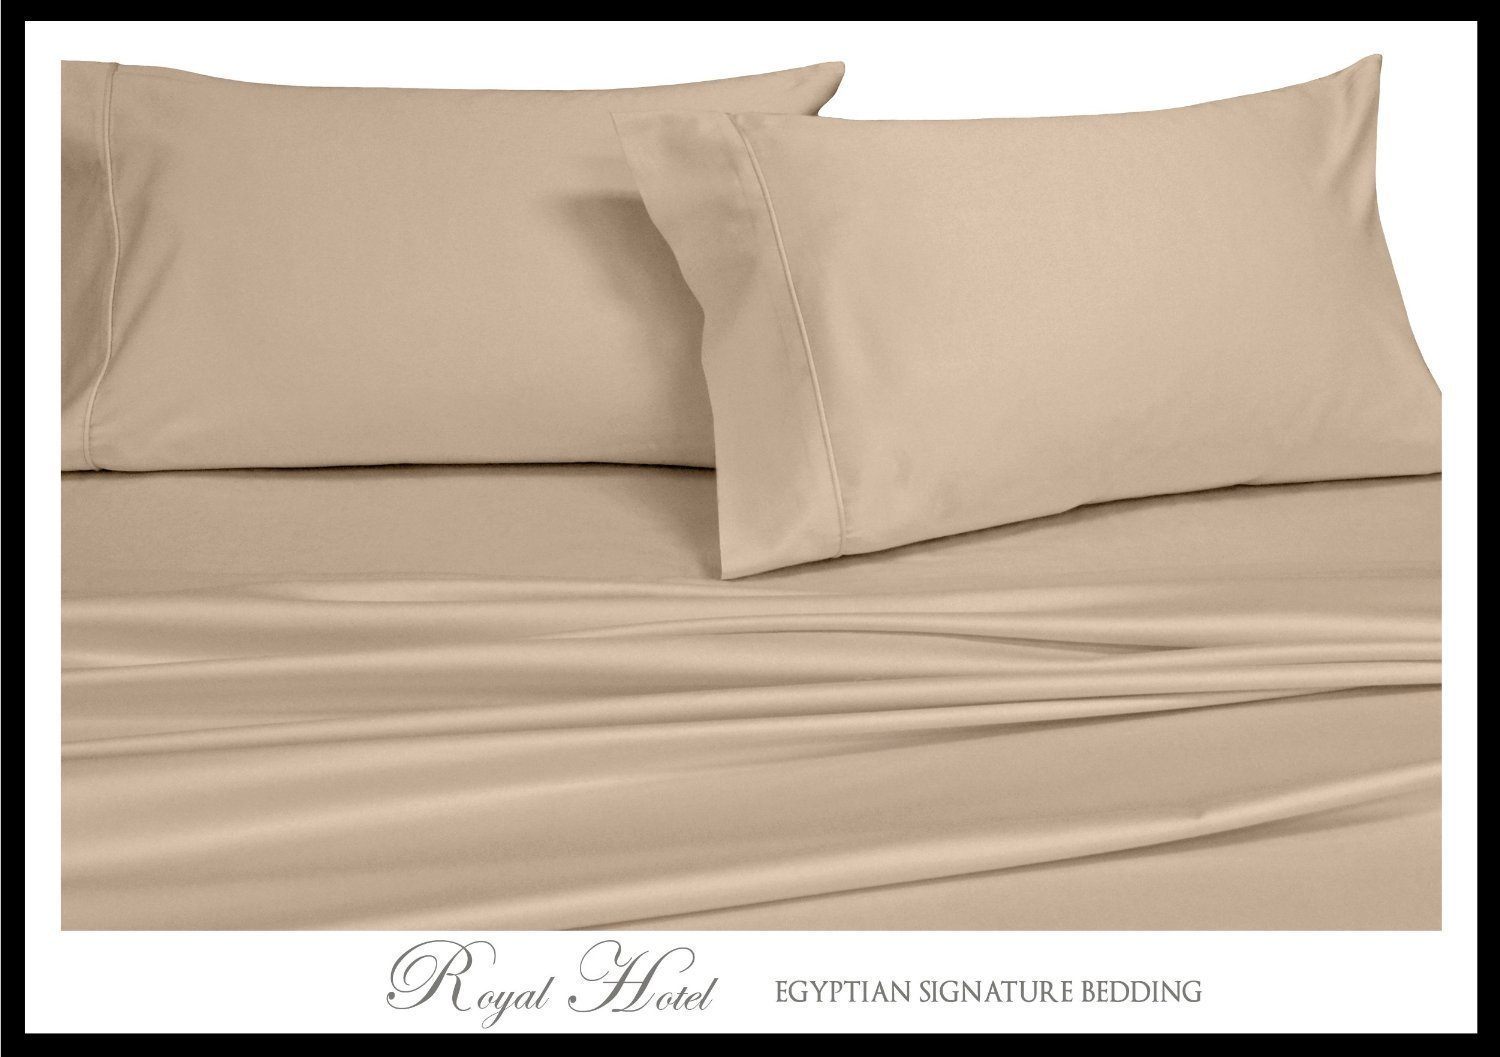 Image of Royal Hotel's 100% cotton 1000 thread count sheets - Best 1000 Thread Count Sheets